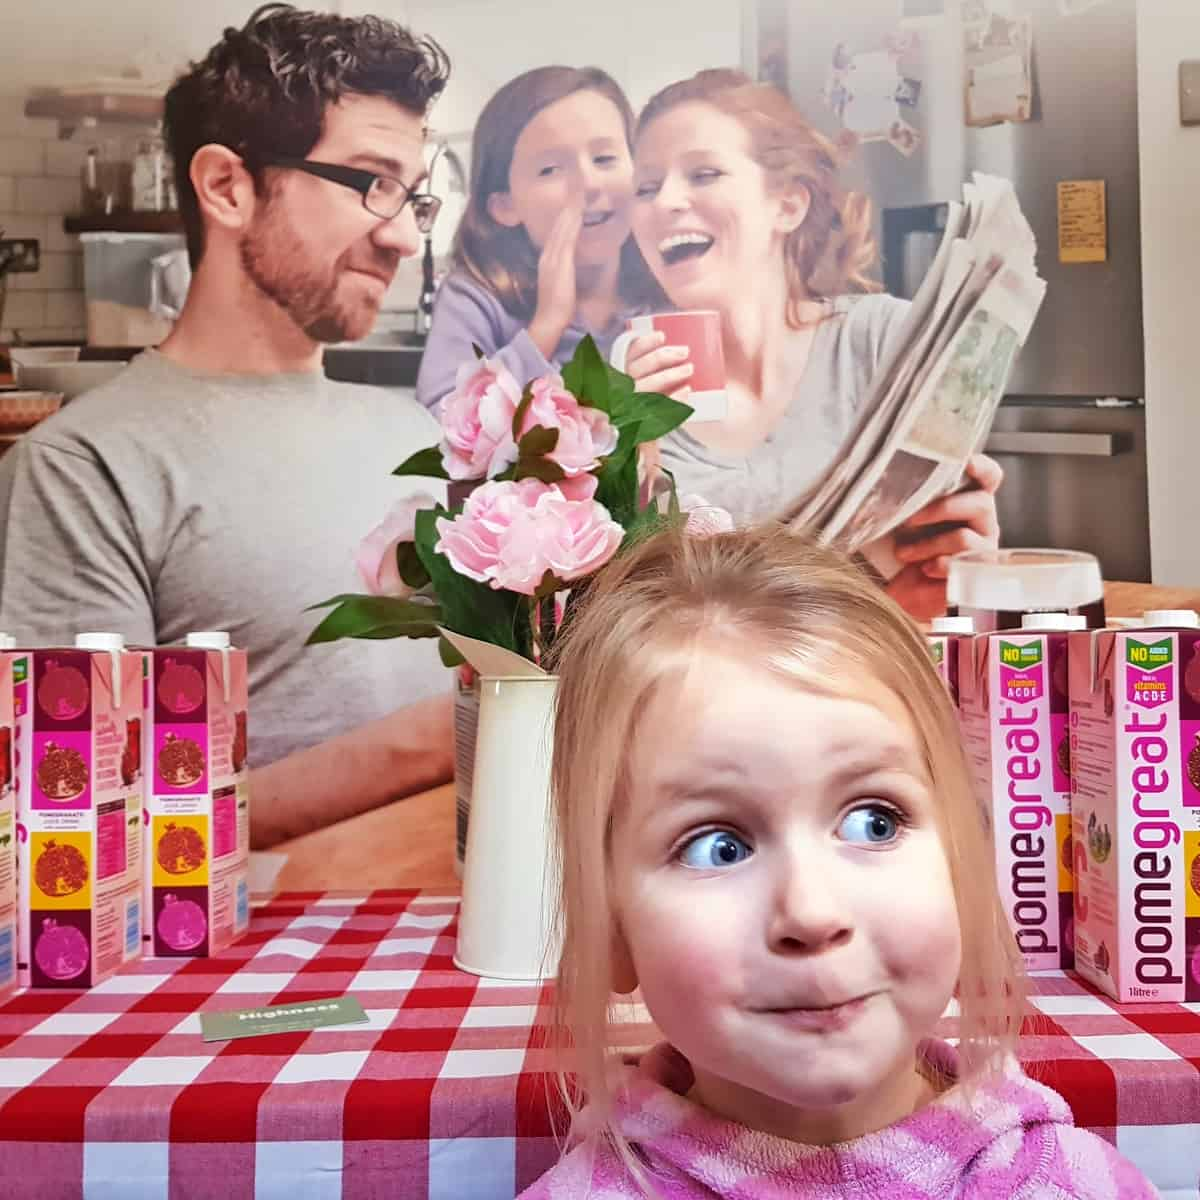 picture of people laughing behind a table with pomegreat on. Little girl pulling a face in front of the table.